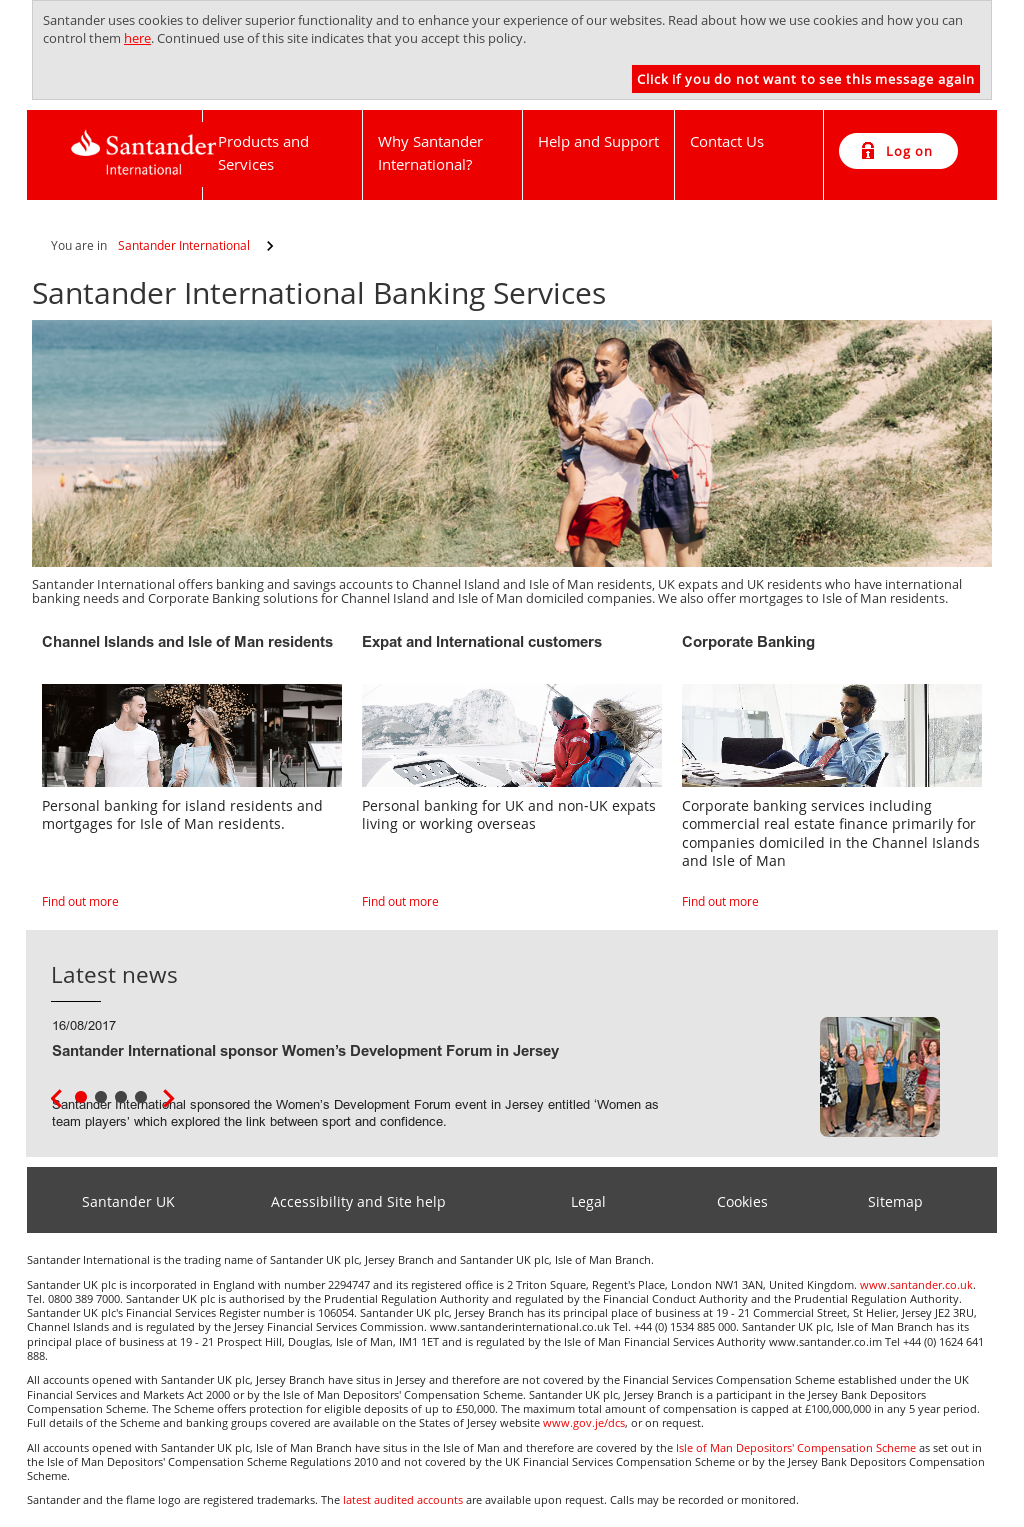 Santander Private Banking Competitors, Revenue and Employees